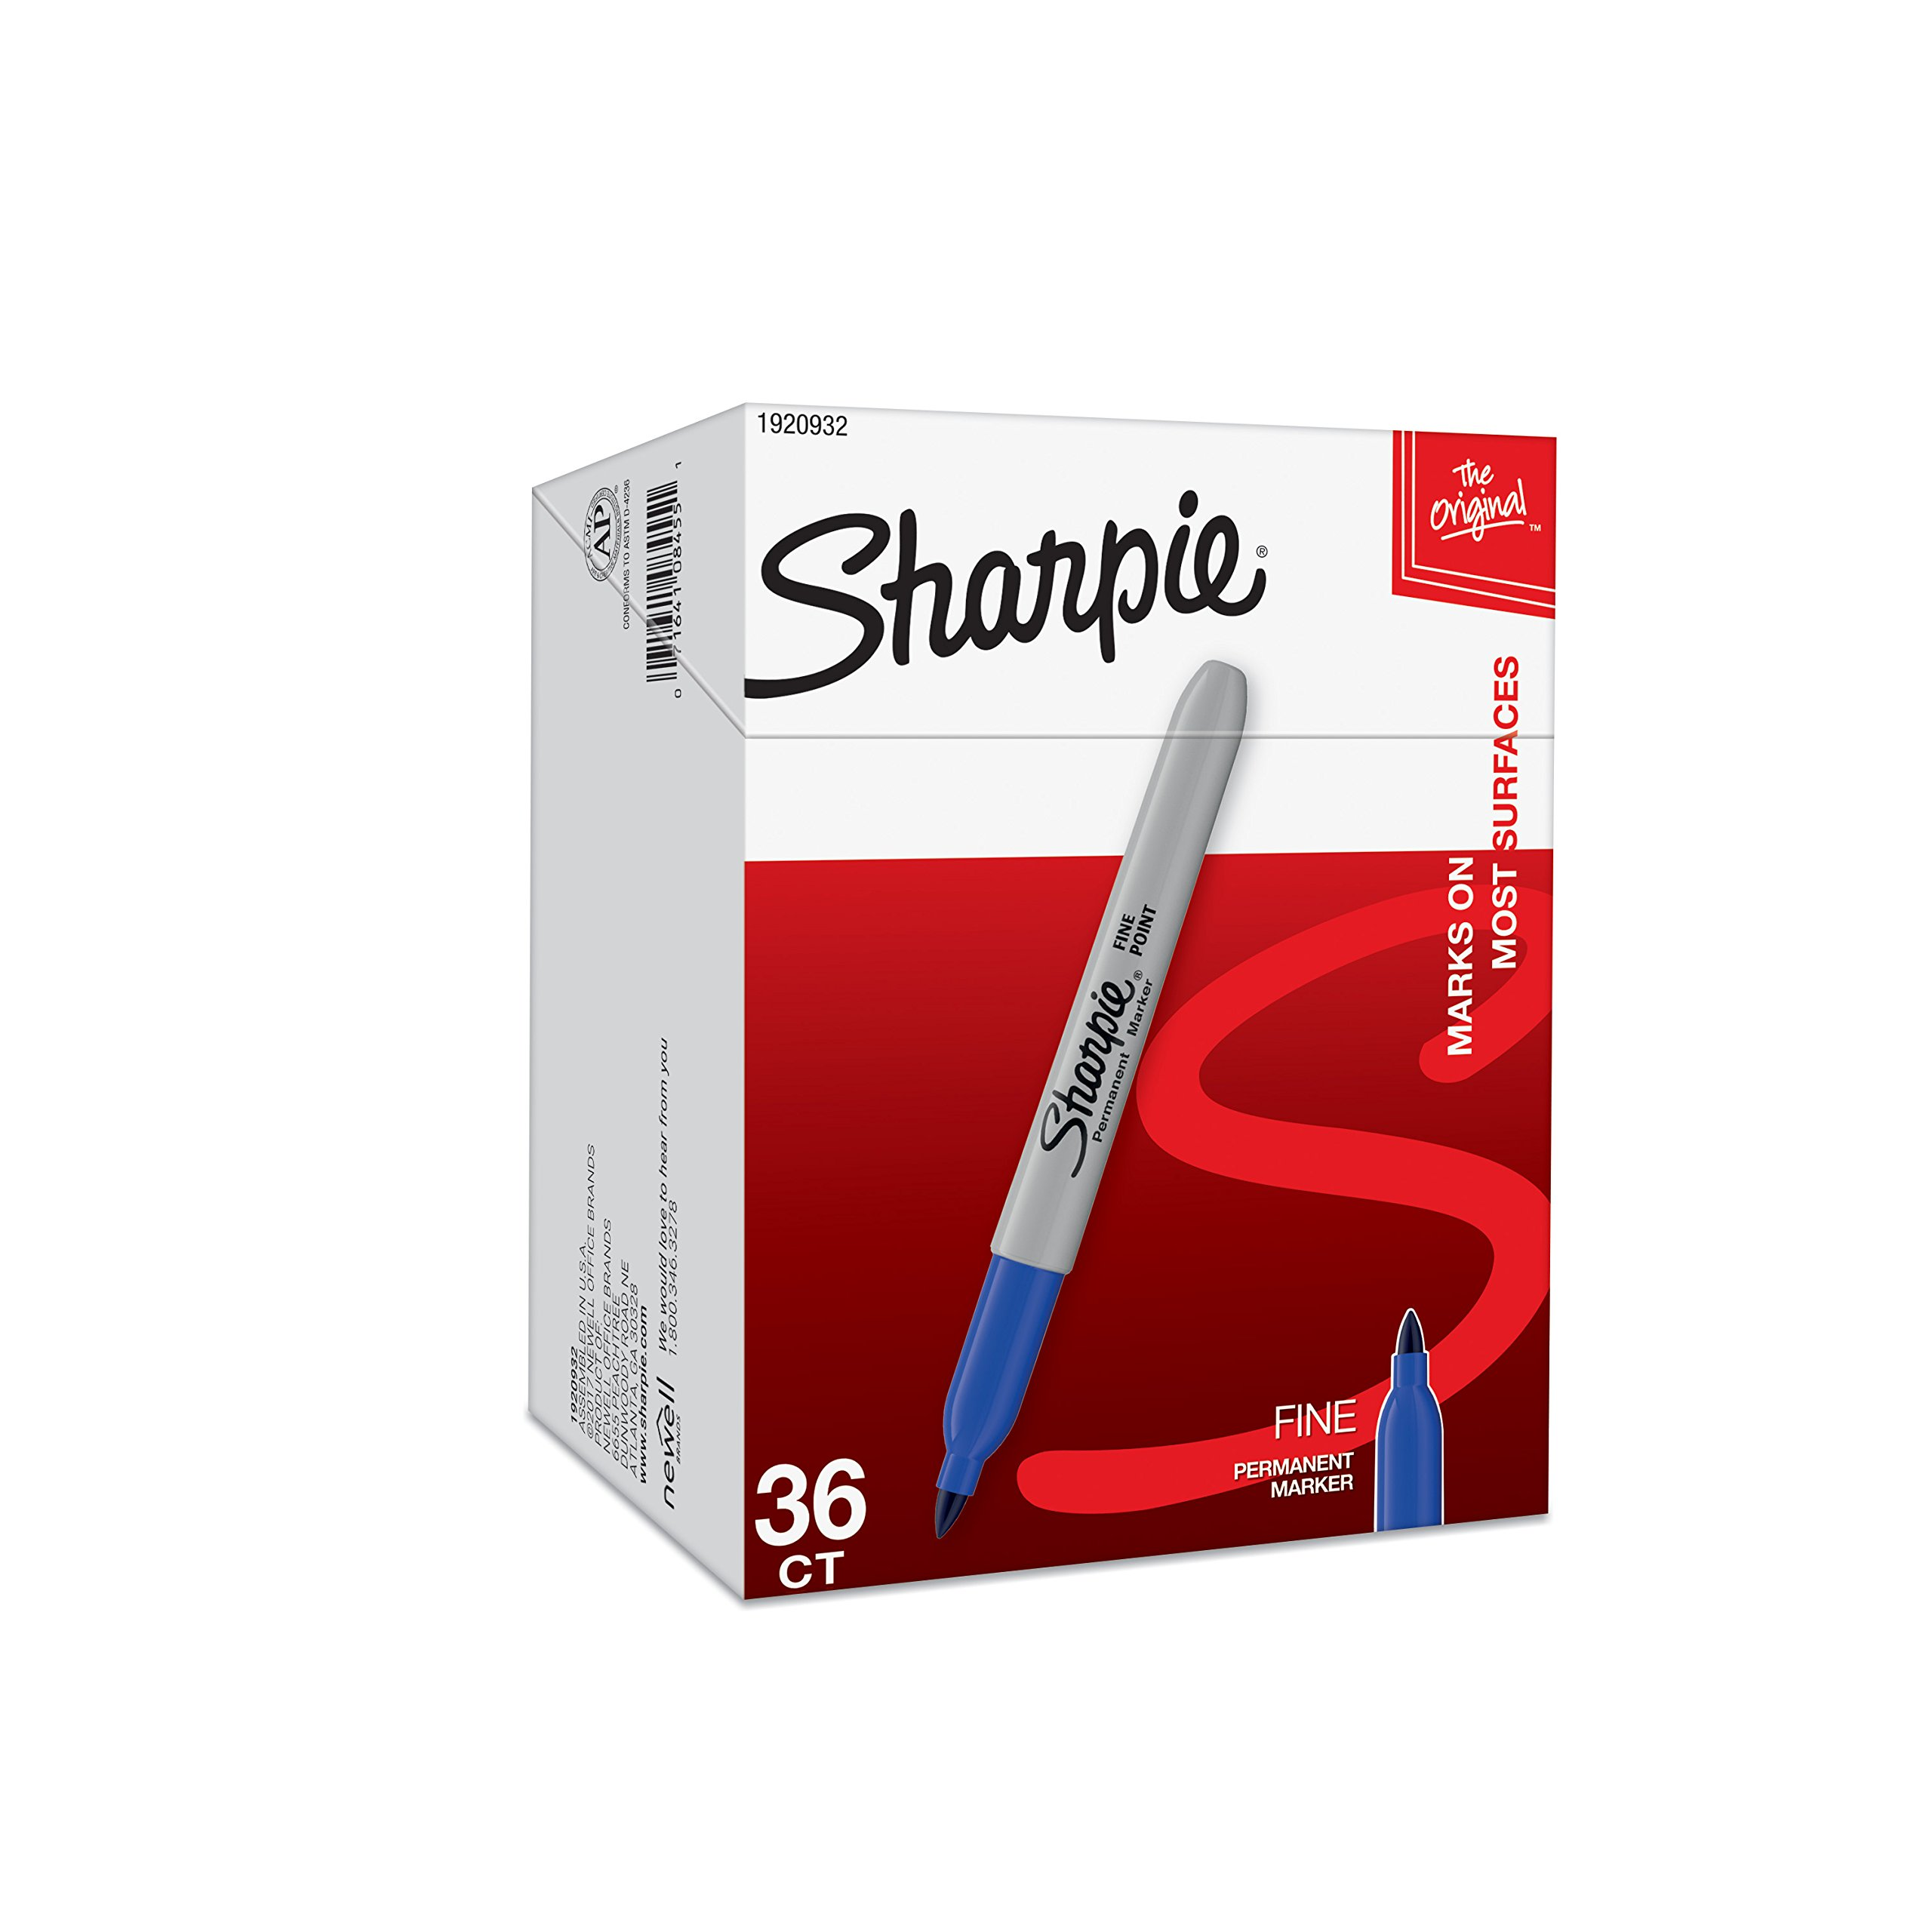 Sharpie Permanent Markers, Fine Point, Blue, 36-Pack (1920932) by Sharpie (Image #1)